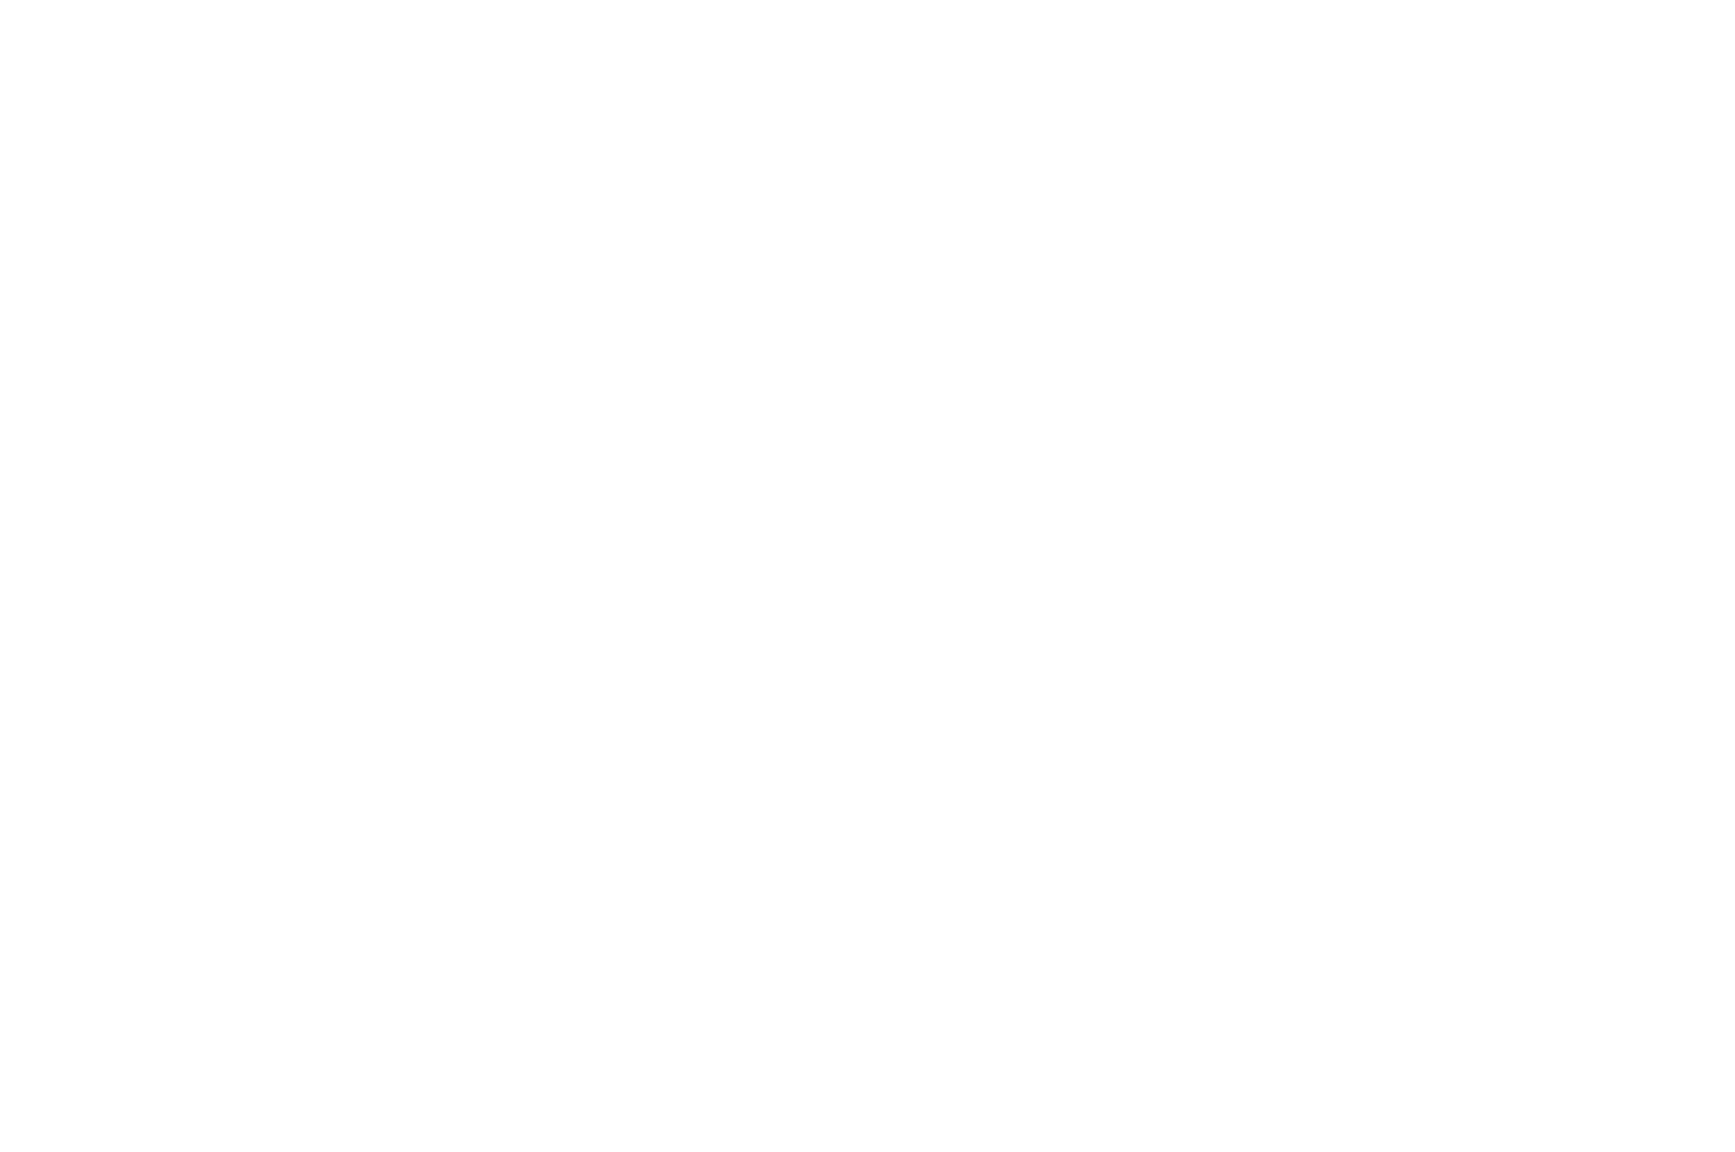 Best International Short Film Silver Award - TORONTO AFTER DARK FILM FESTIVAL - 2018 (1).png